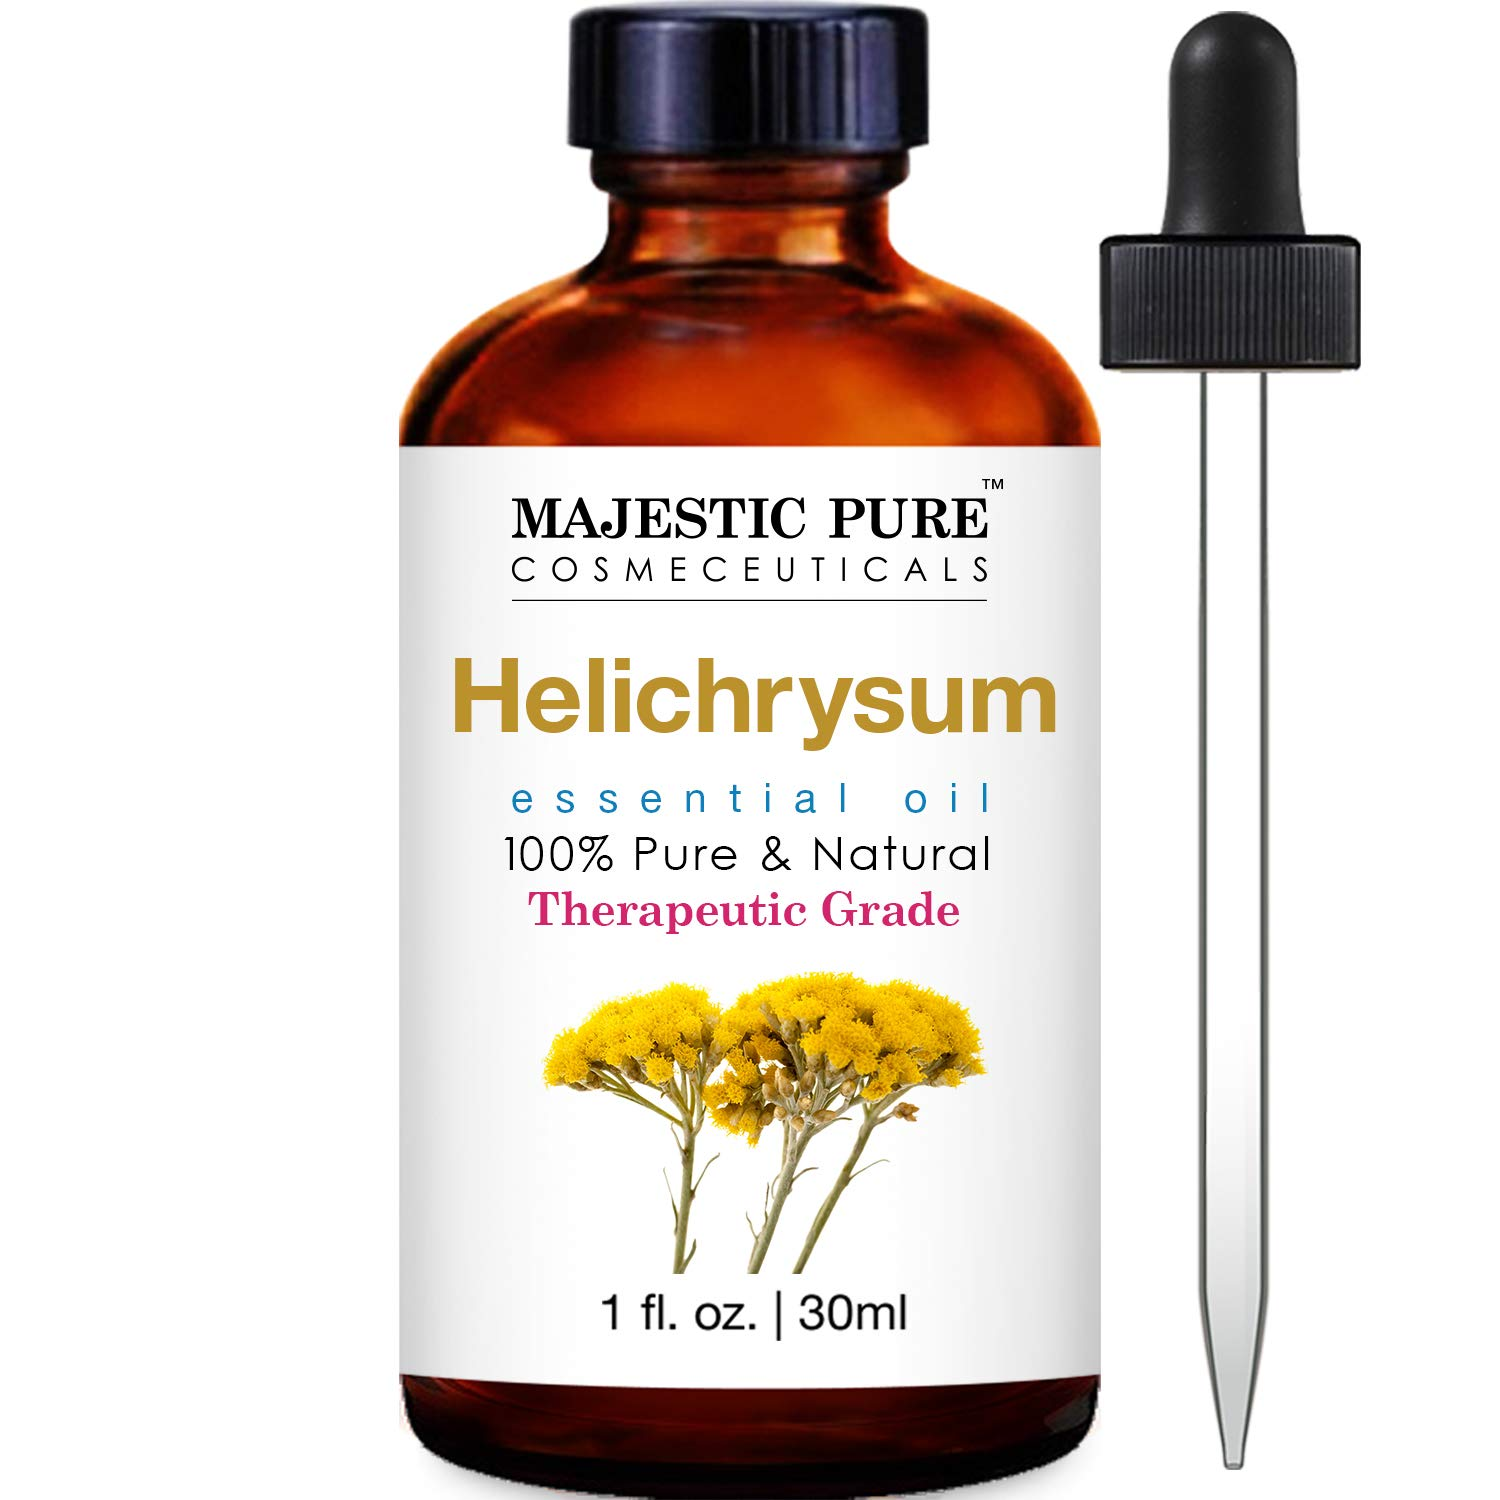 MAJESTIC PURE Helichrysum Oil, Highest Quality Therapeutic Grade Essential Oil, 1 fl oz by Majestic Pure